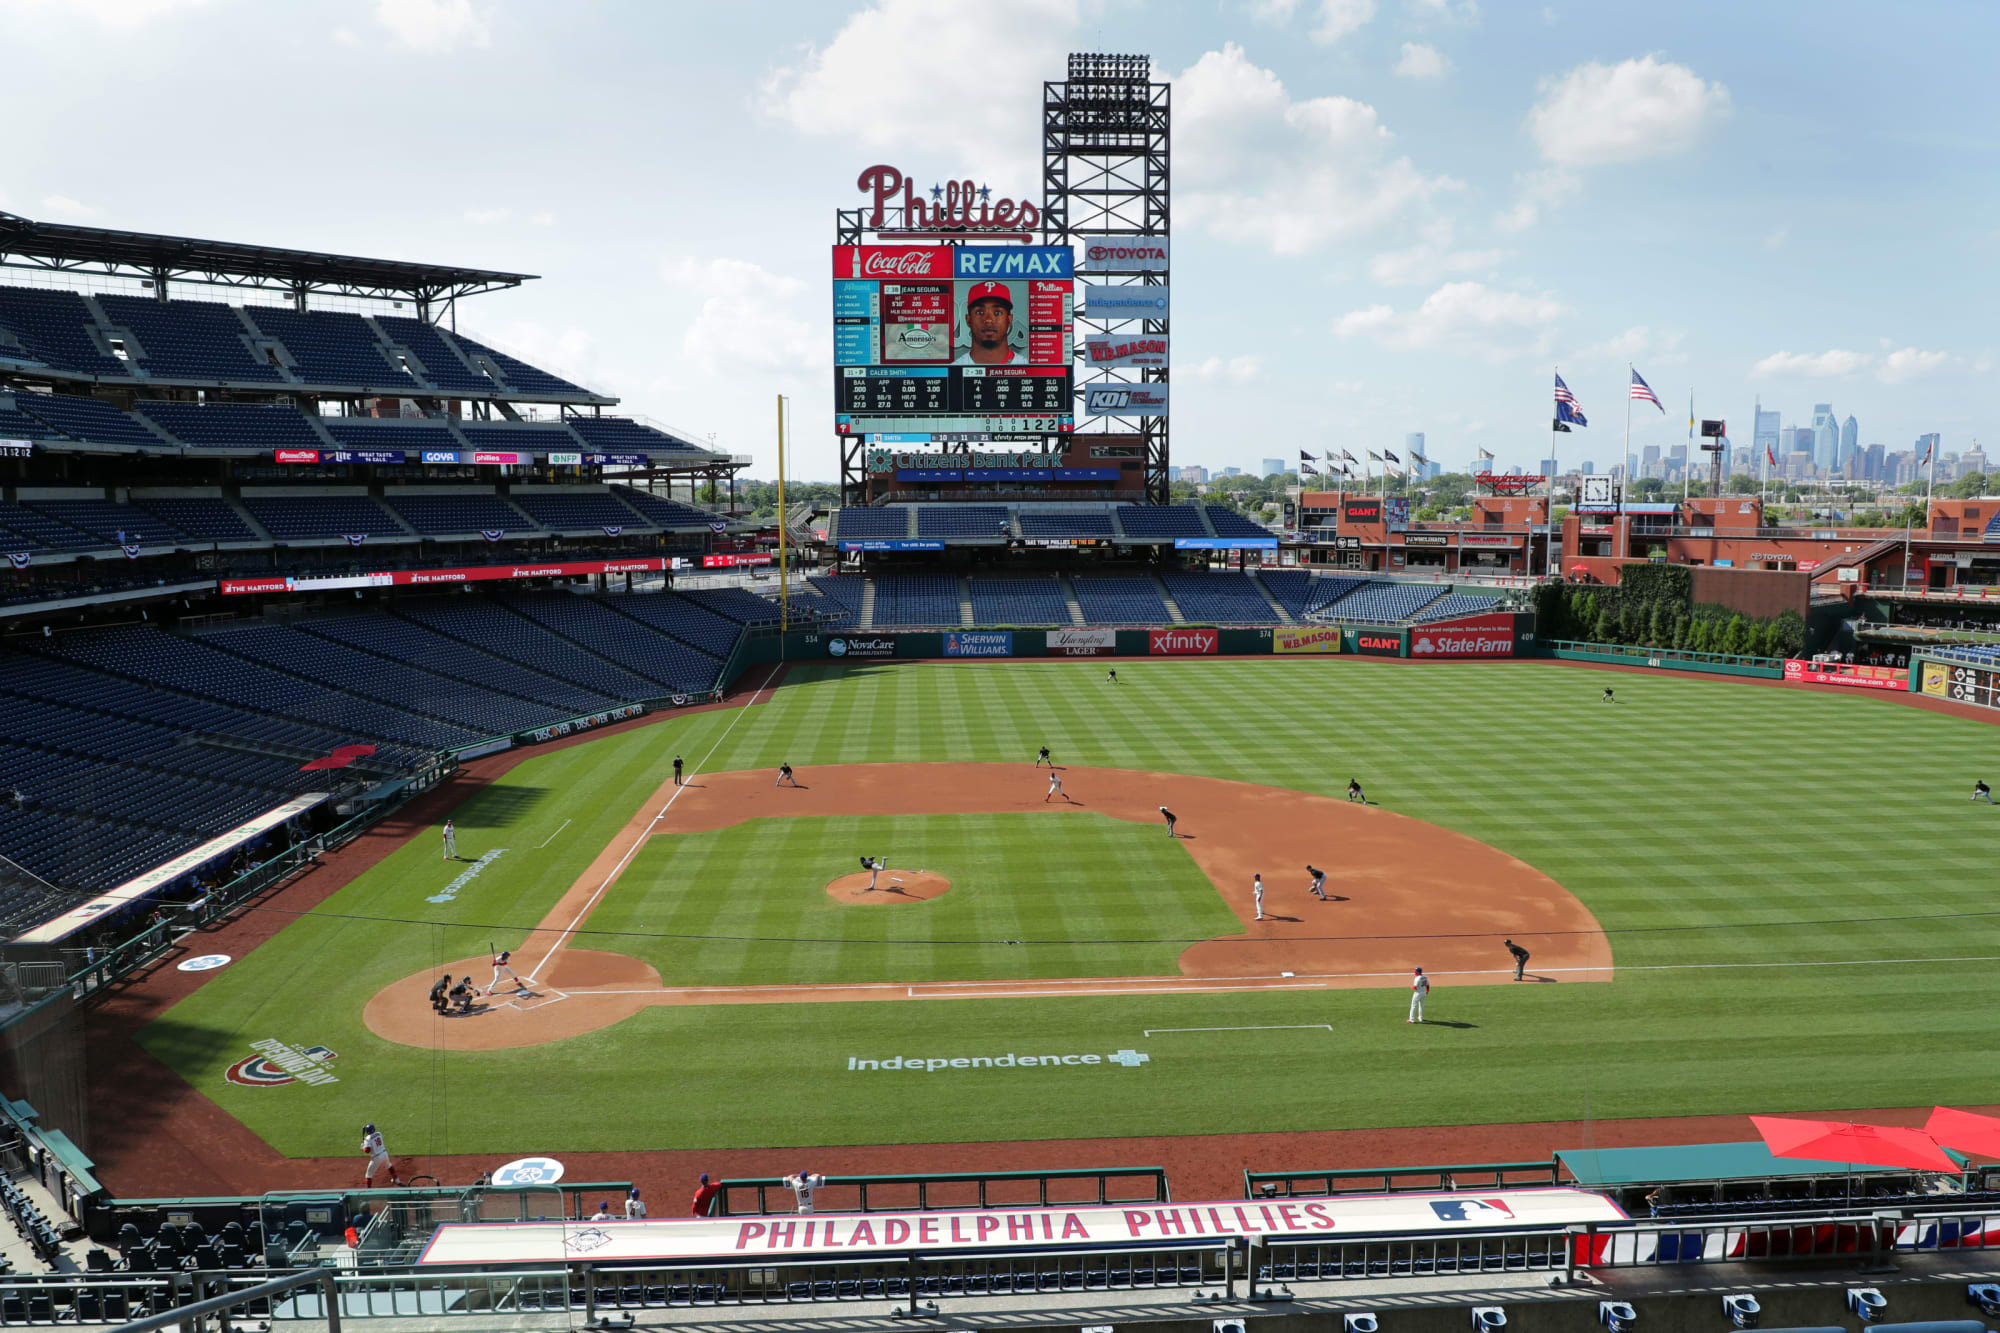 Phillies to host relocated Blue Jays as road team this week